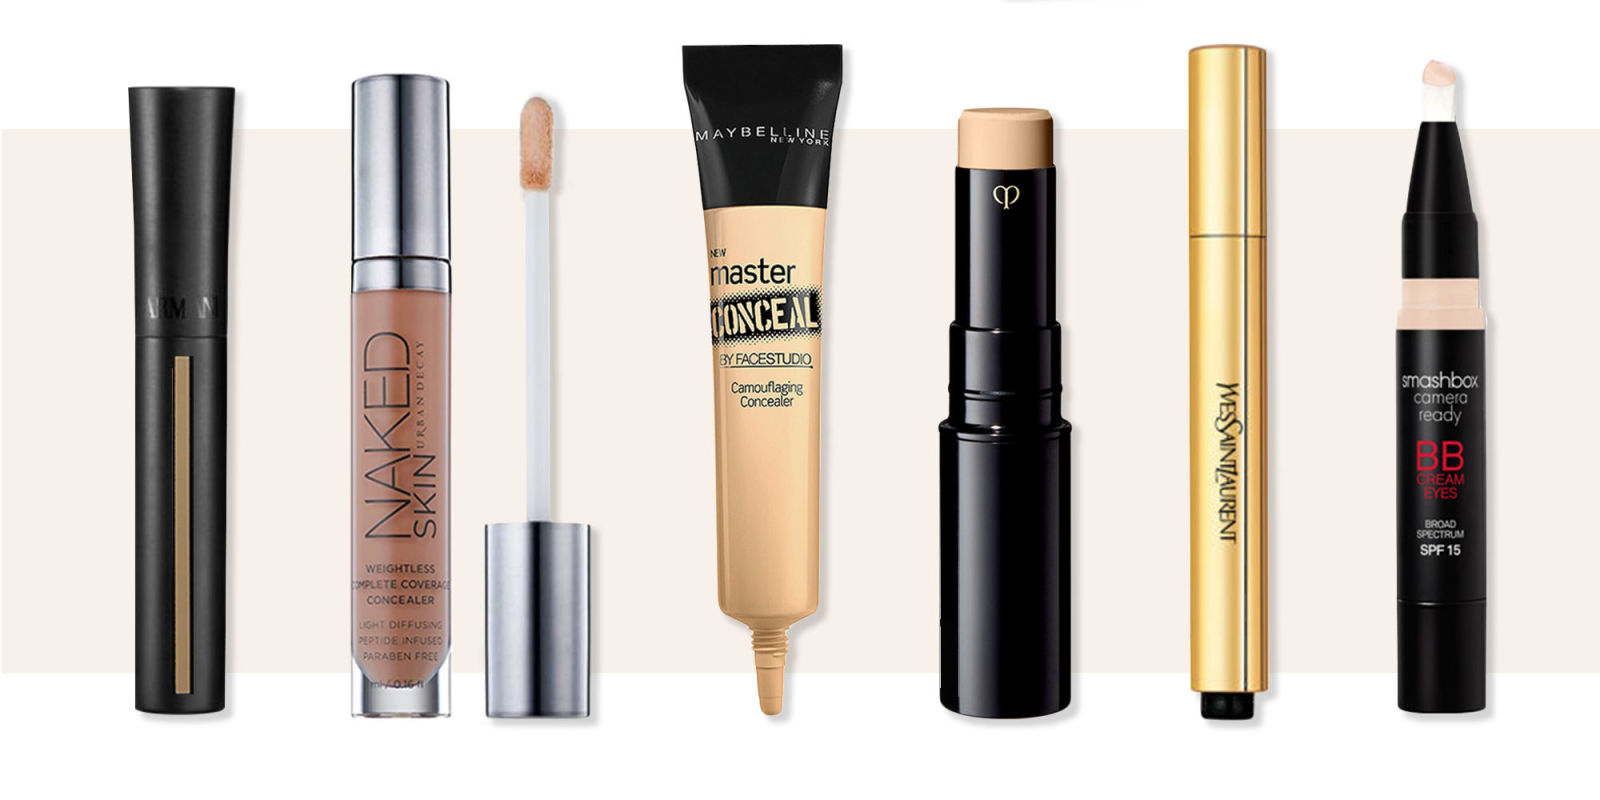 13 Best Under Eye Concealers for 2017 - Concealers for Dark Circles